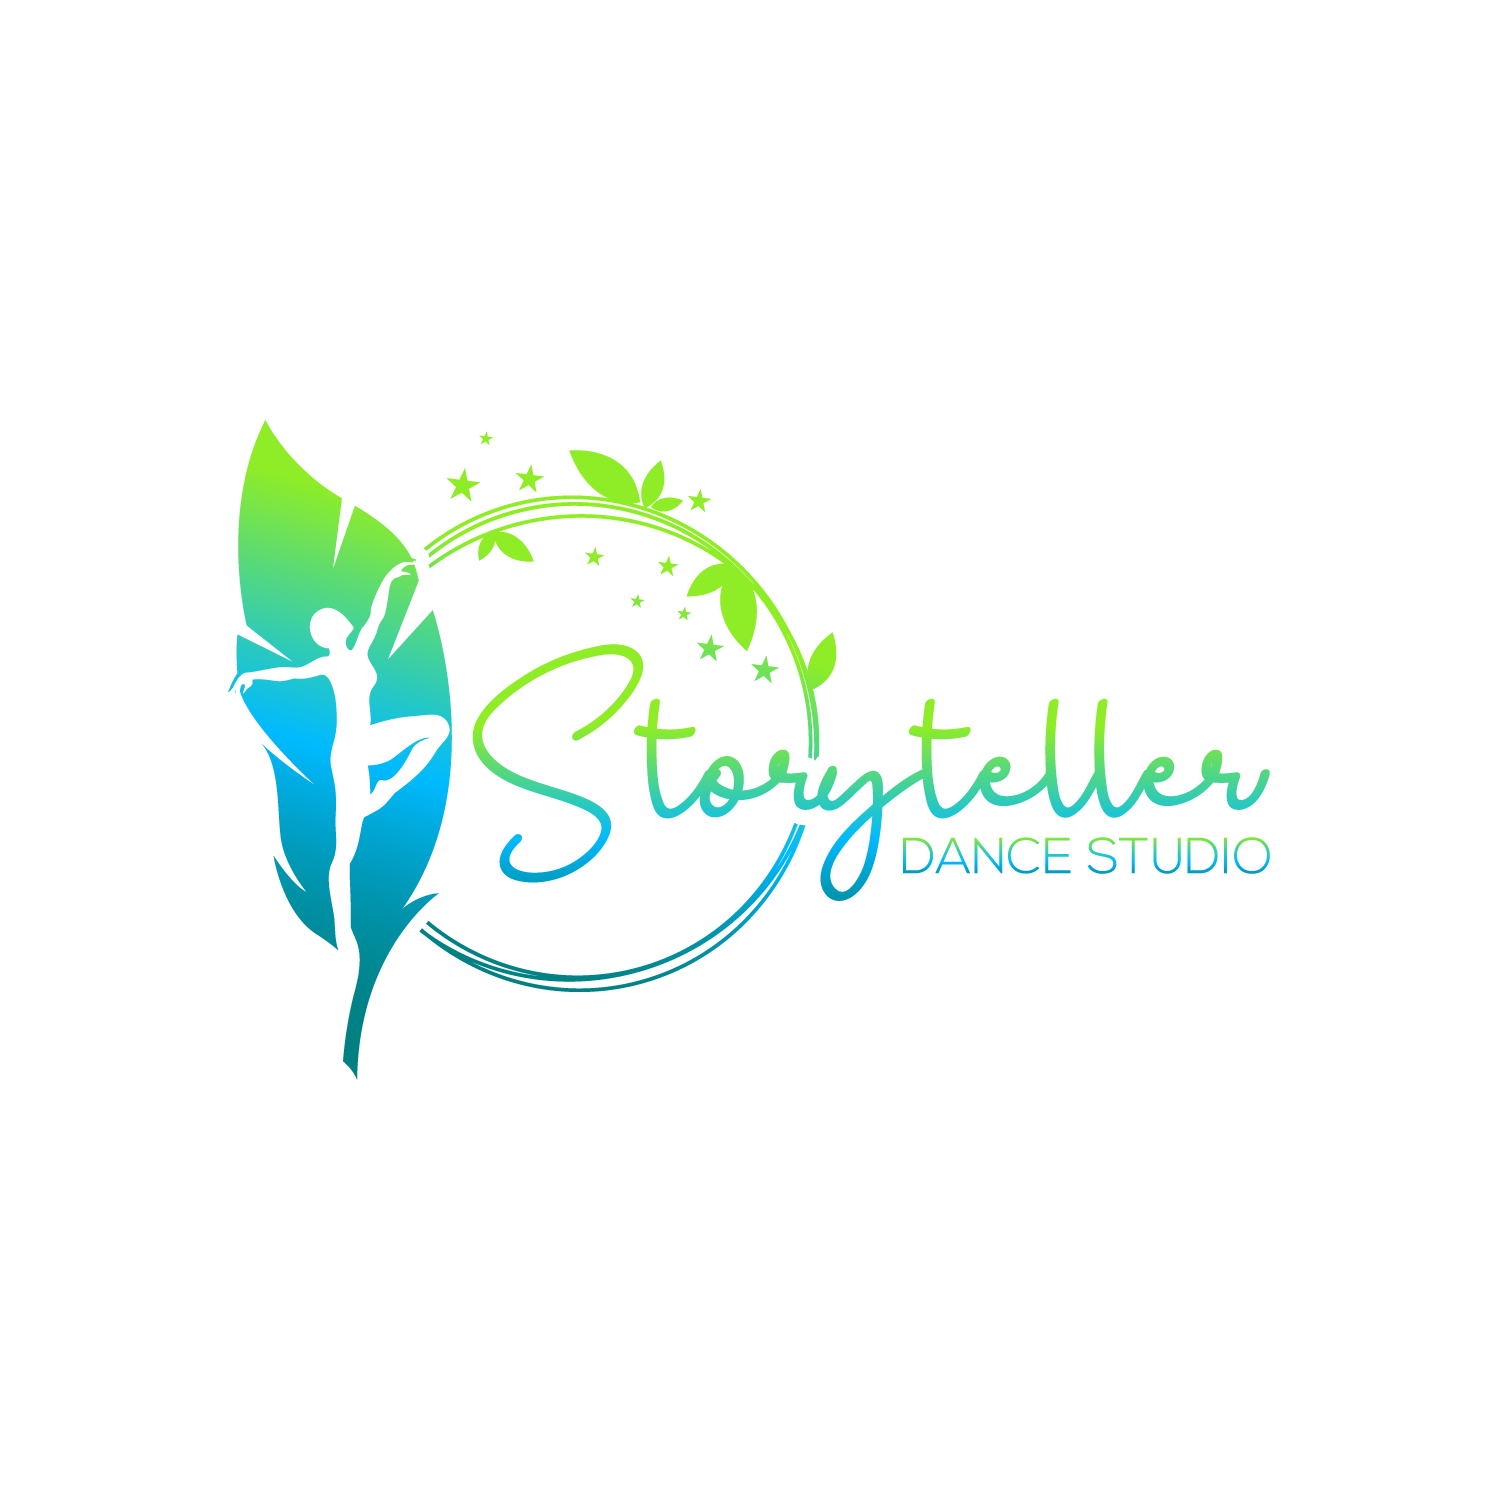 Storyteller Dance Studio_Final_Files_13.3.19-01.png